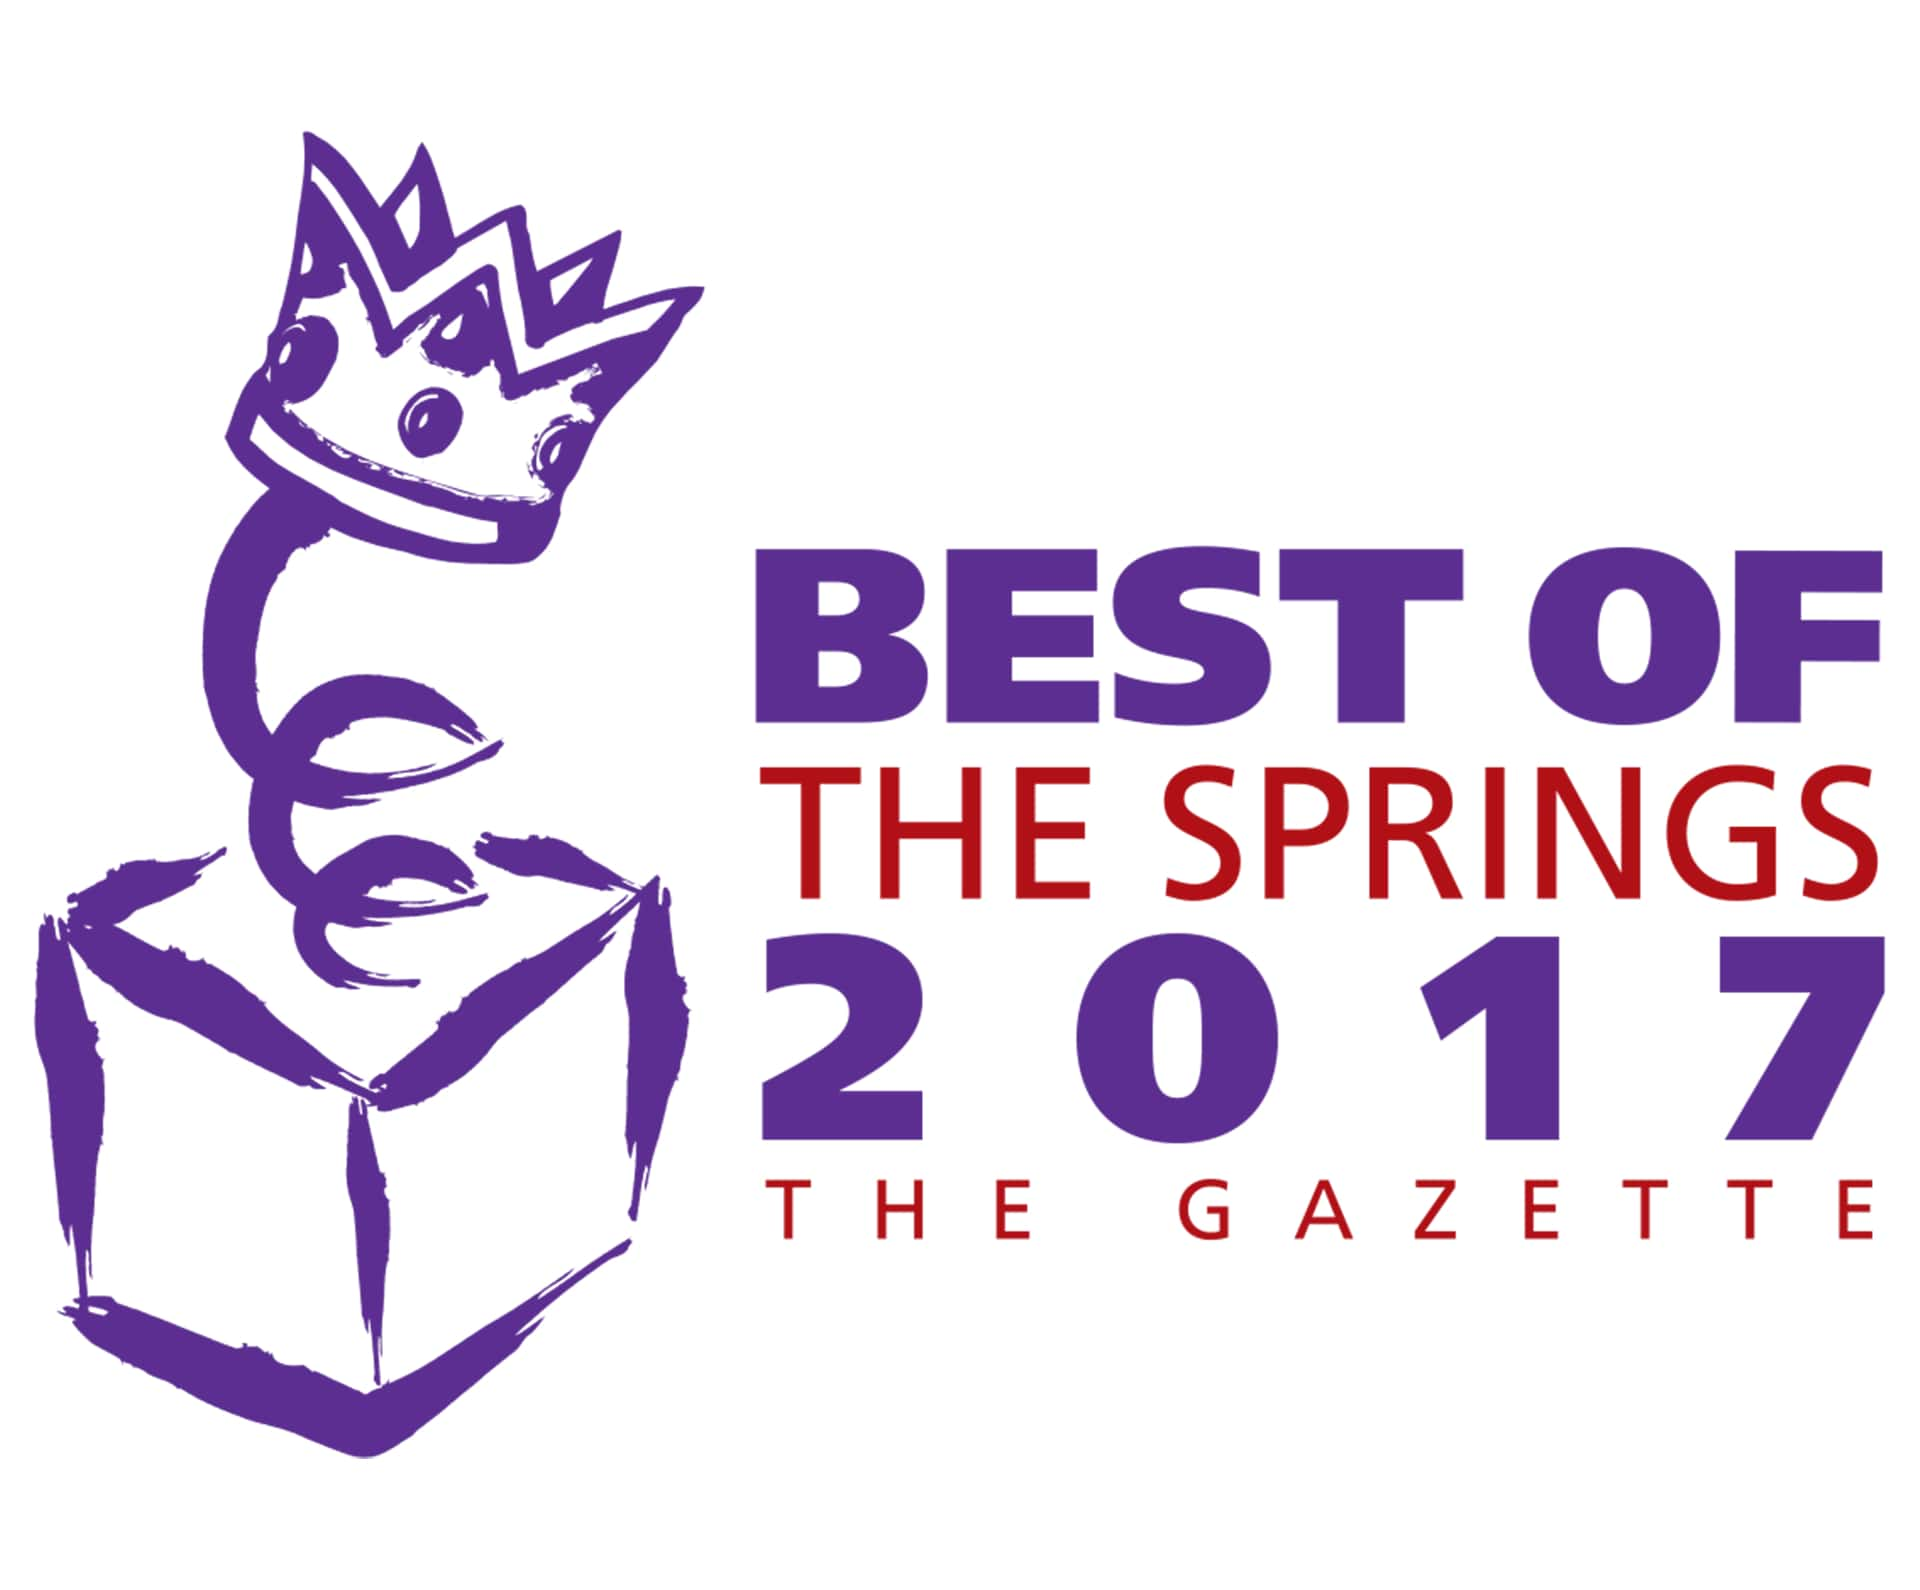 2017 Winner for The Gazette's Best of the Springs Award